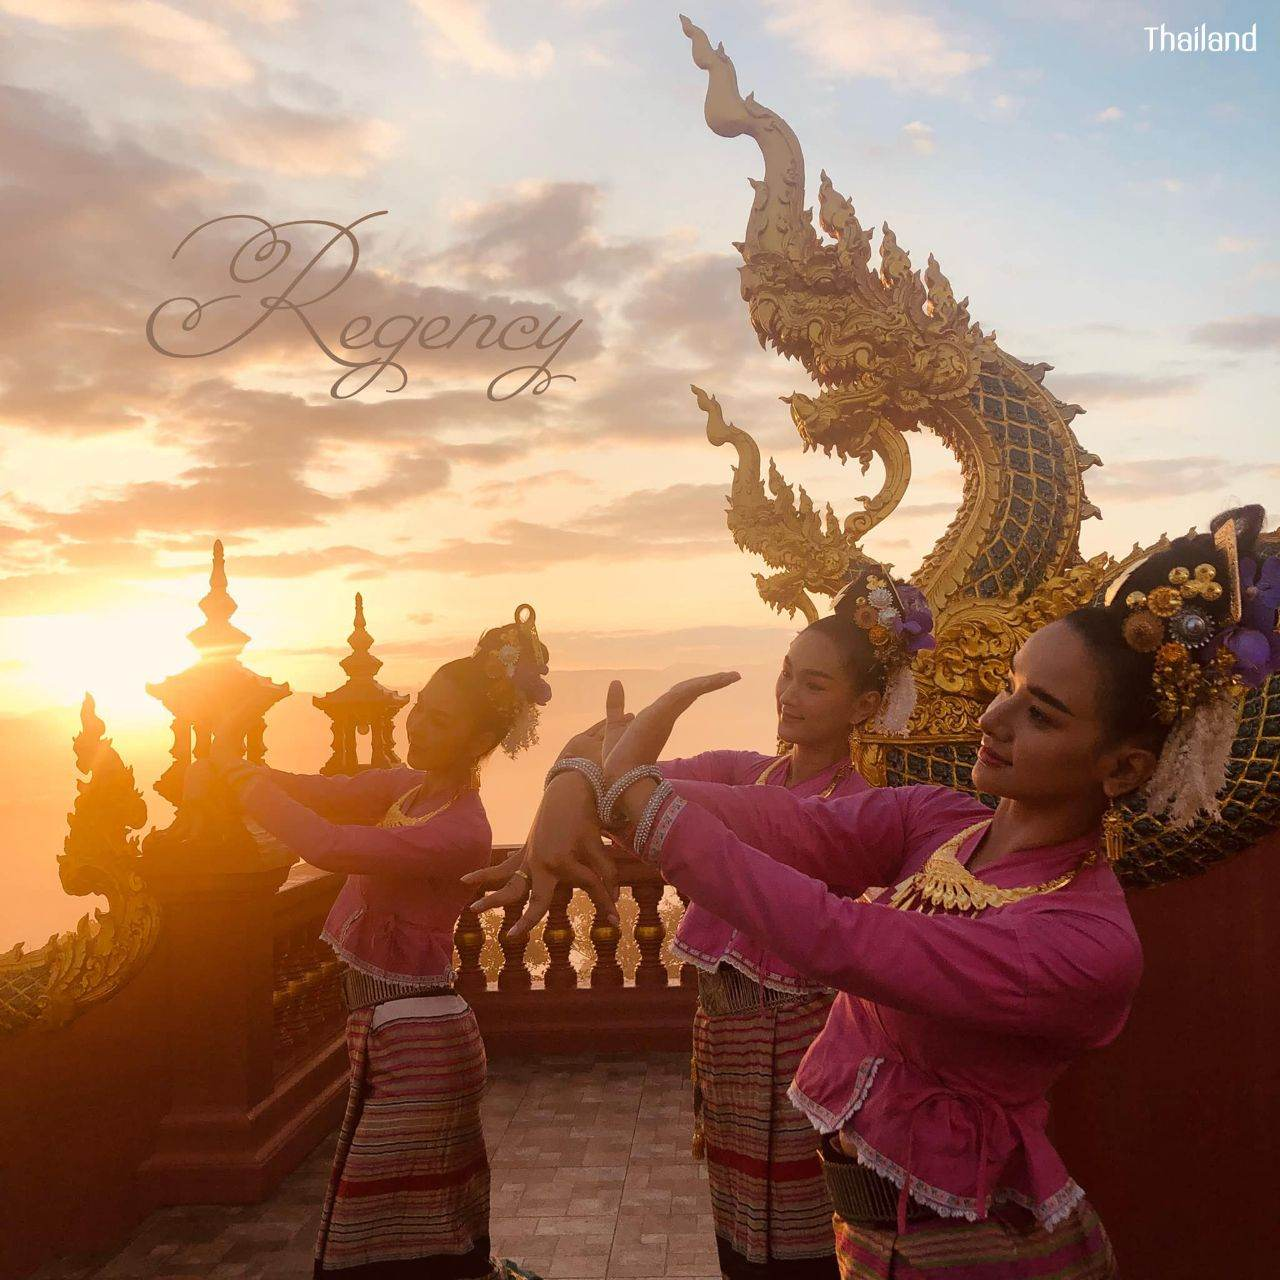 The culture of 4 regions | THAILAND 🇹🇭